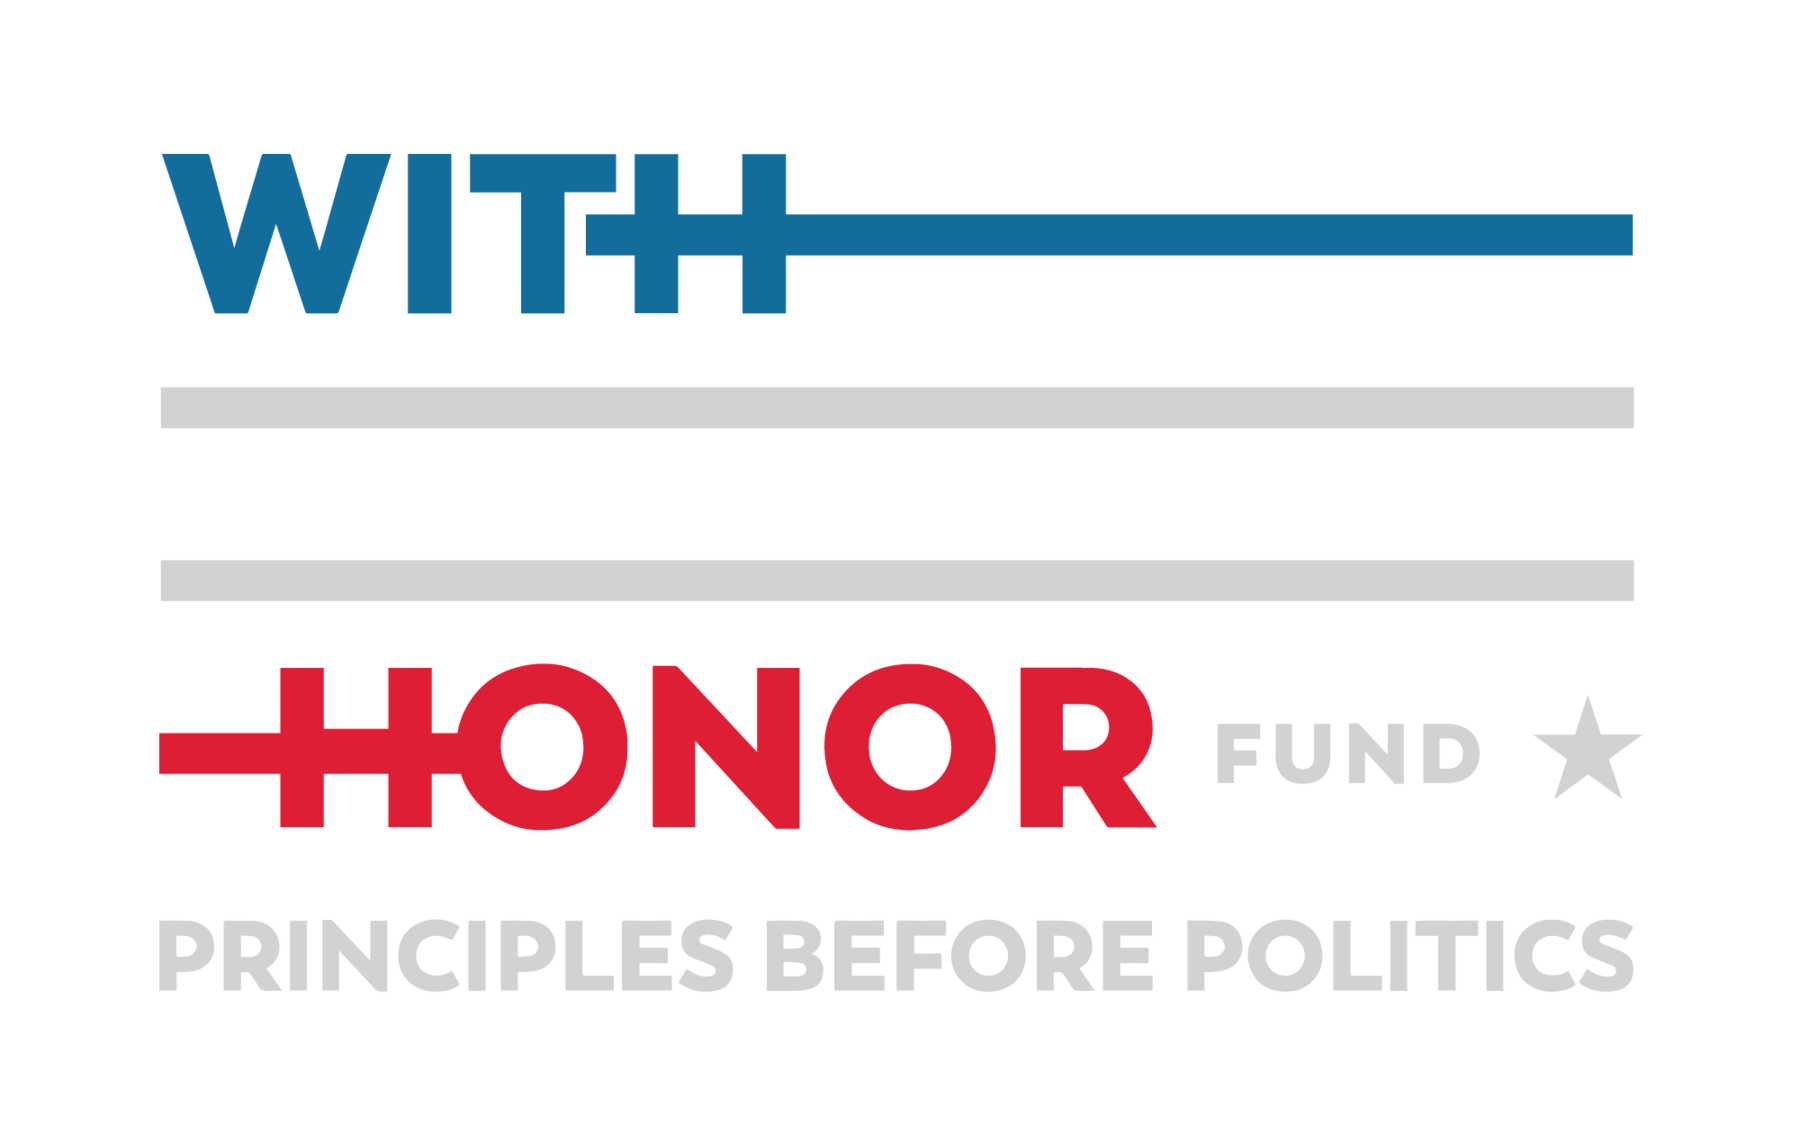 WITH HONOR FUND: With Honor Fund, Inc.